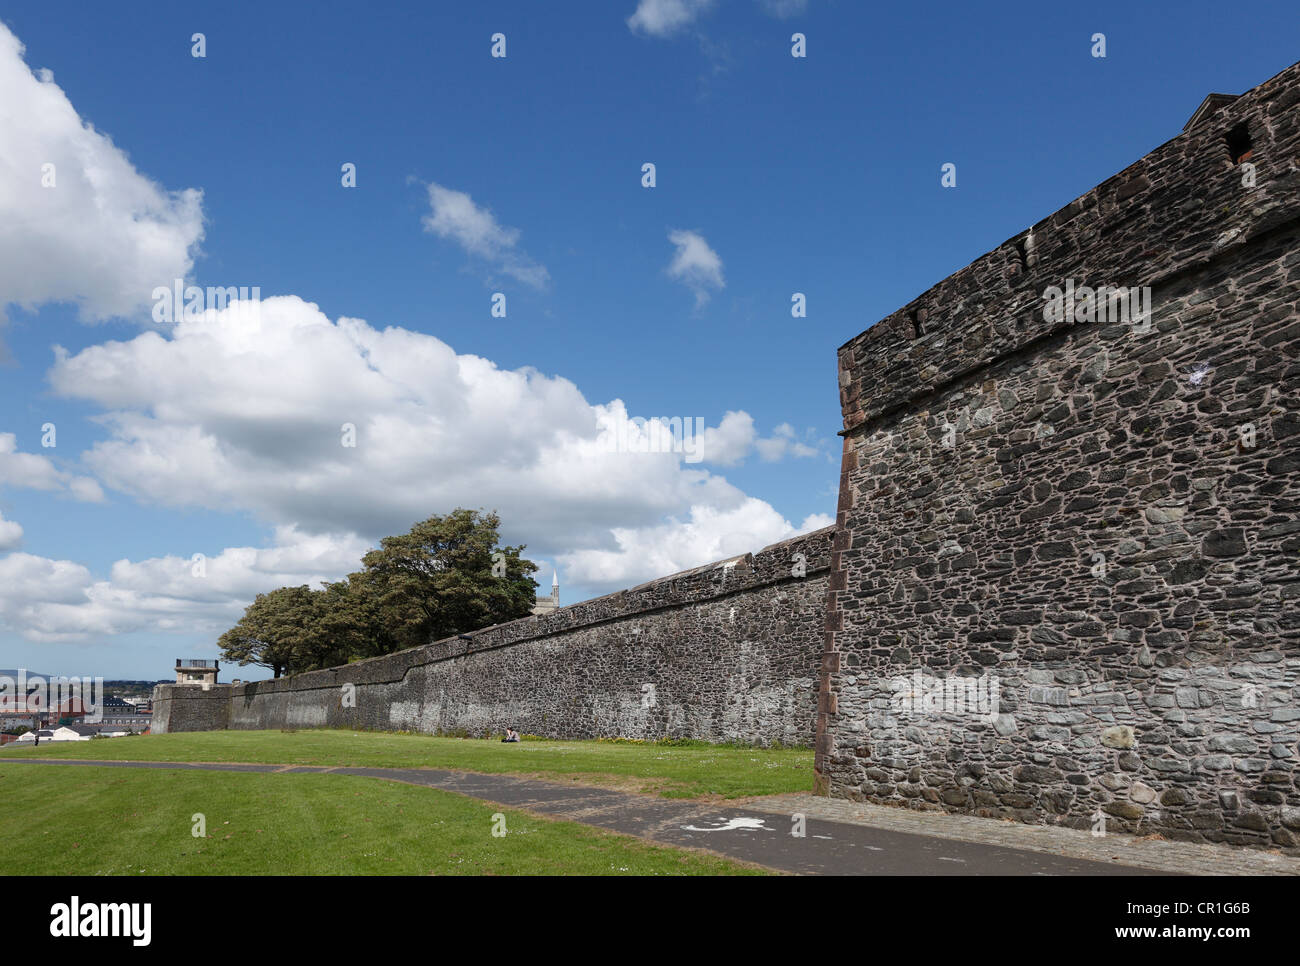 City walls, Londonderry, County Derry, Northern Ireland, Great Britain, Europe, PublicGround - Stock Image